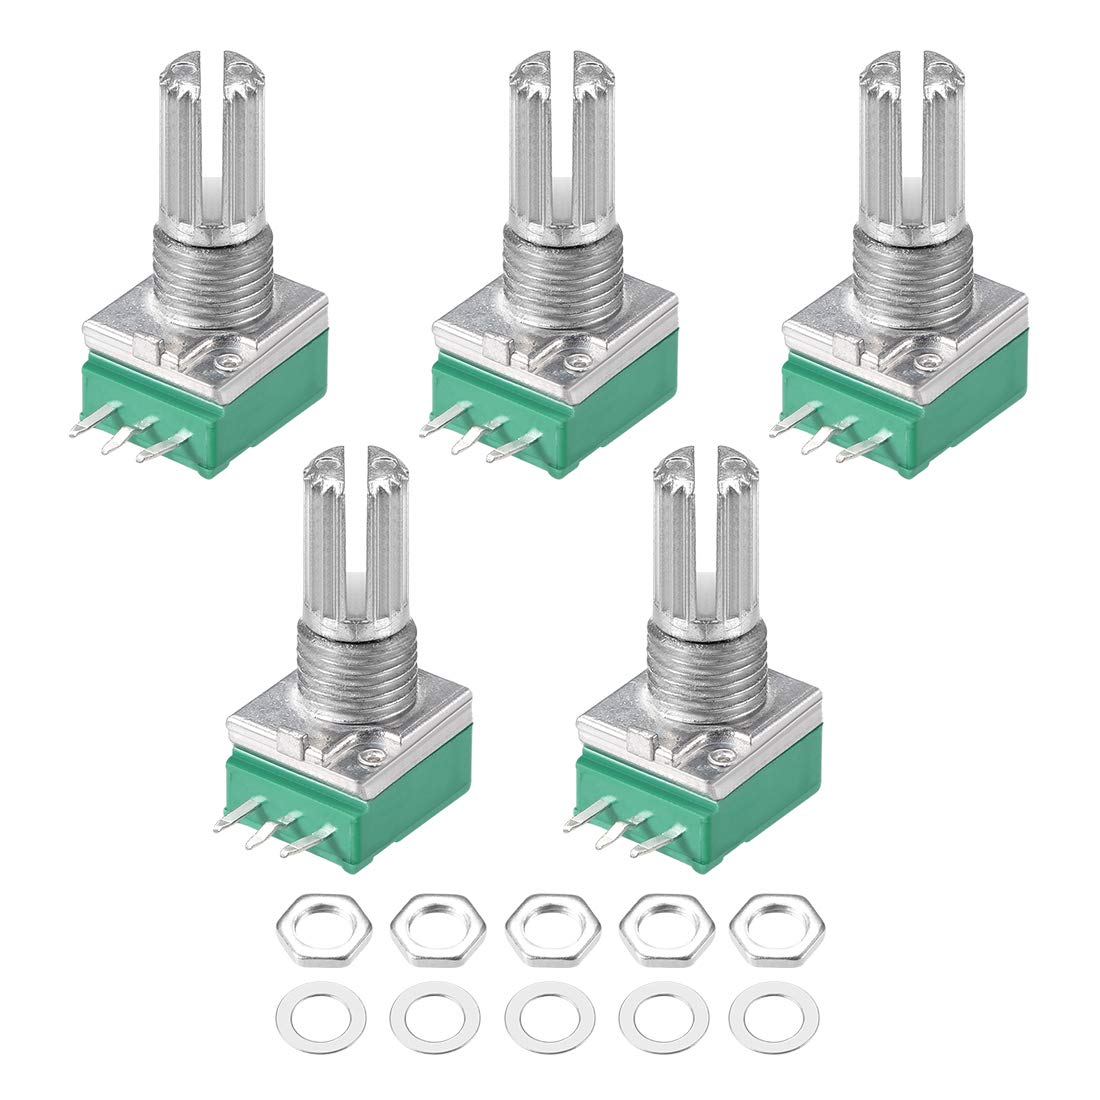 5pcs/lot RV097NS Potentiometer B5K B10K B20K B50K B100K B500K Potentiometer 3Pin Shaft With Switch Audio Sealing Potentiometers